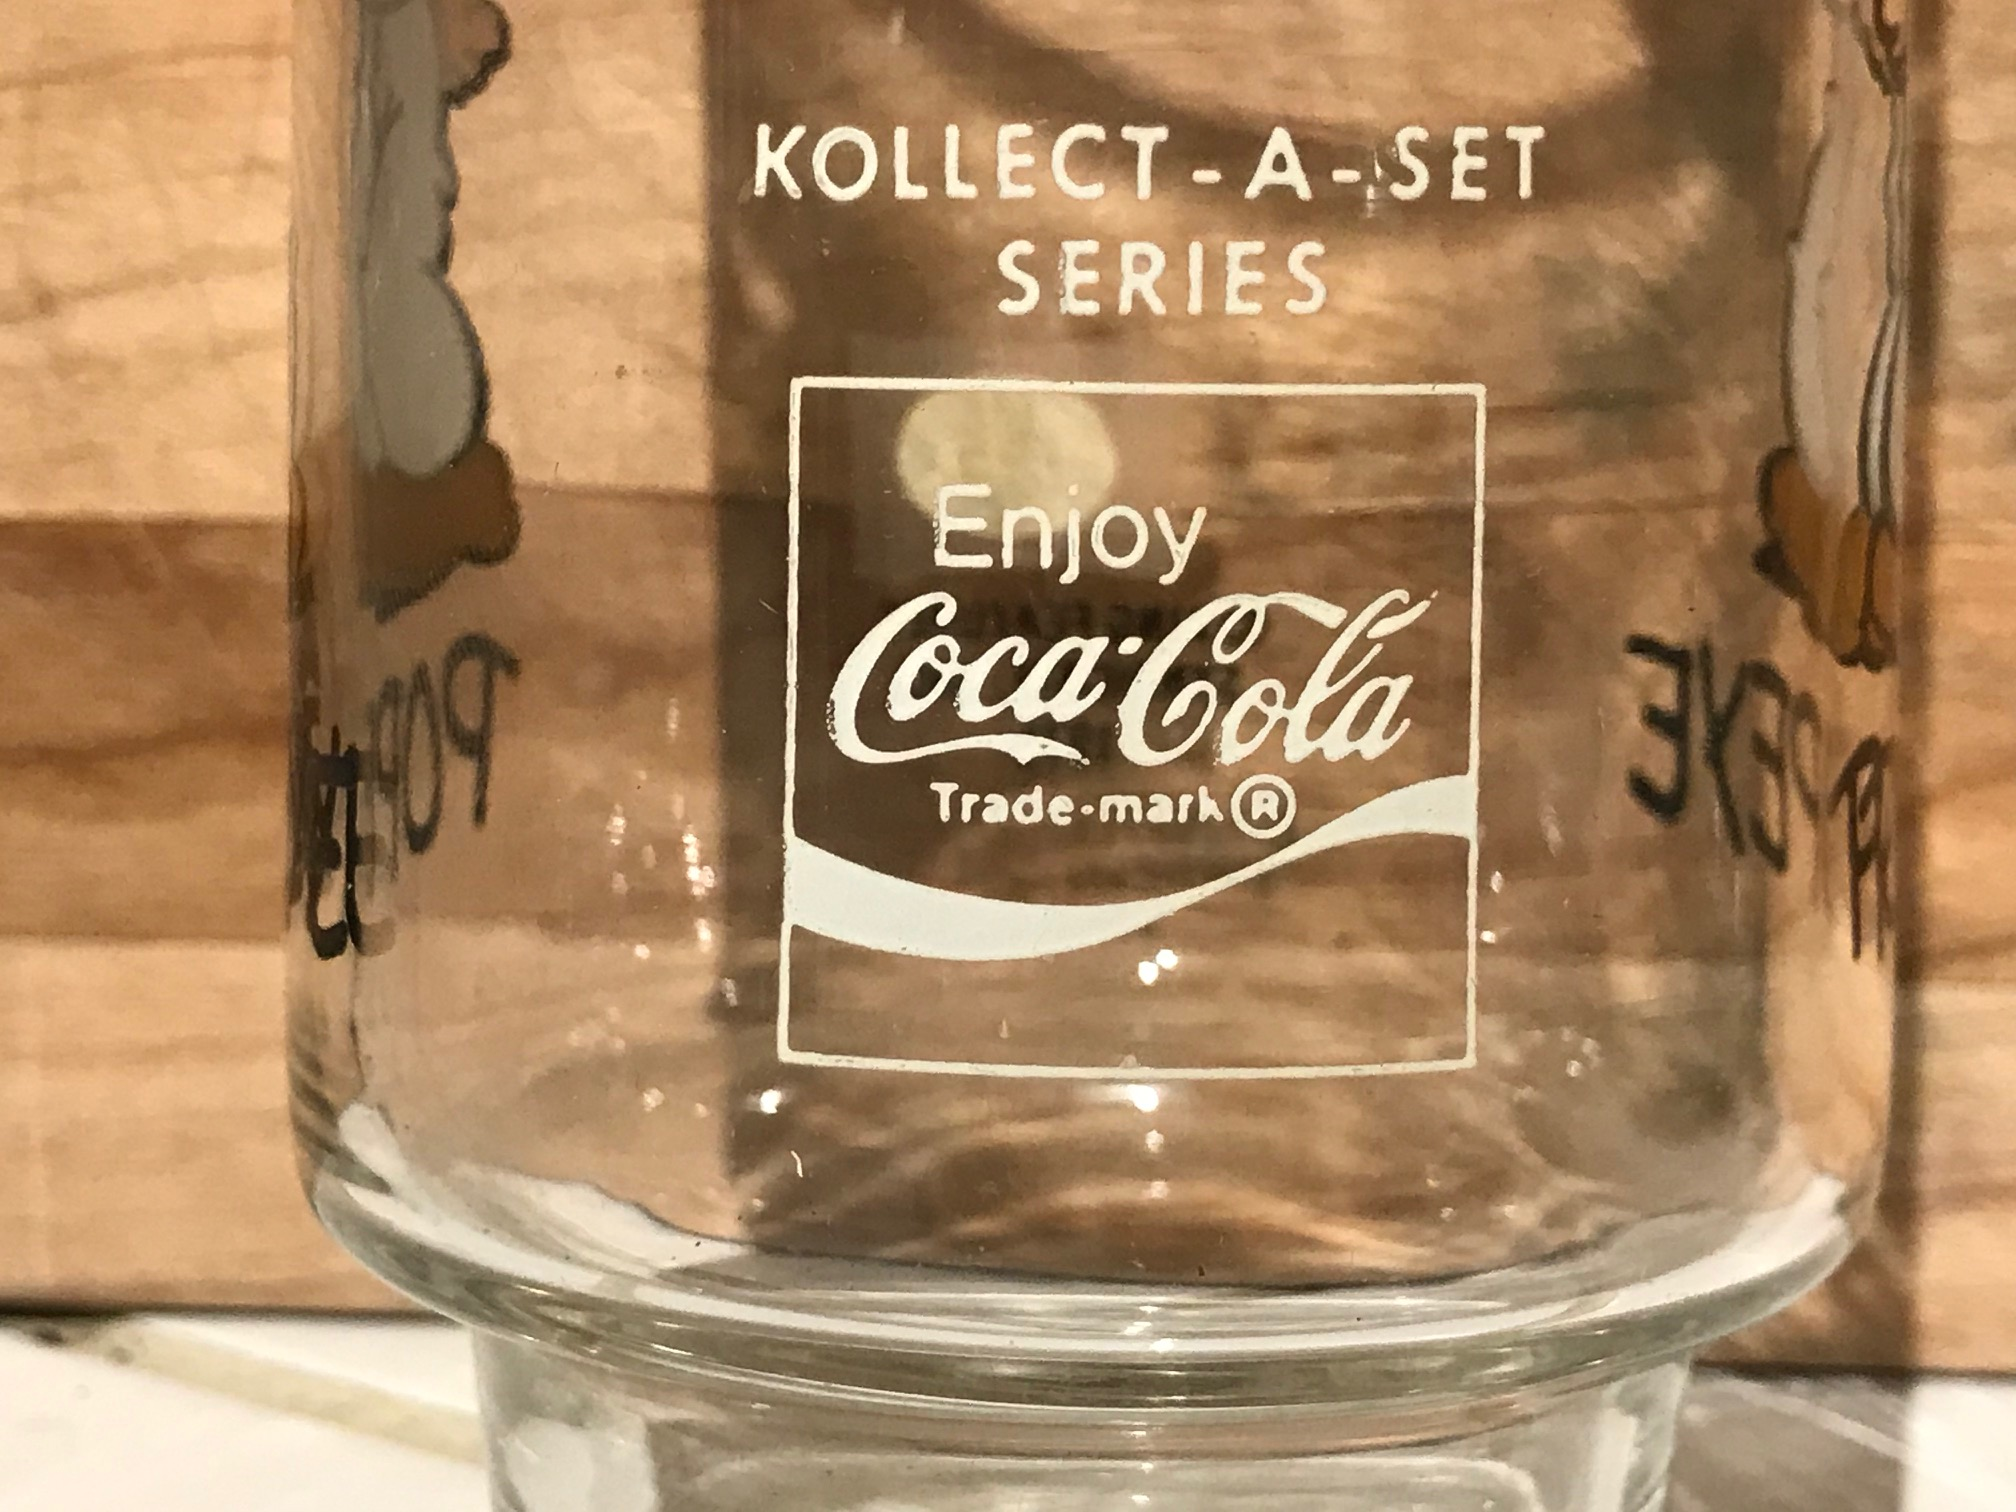 Vintage 1975 Kollect-A-Set Series Coca Cola Popeye Drinking Glass: 108,300 ppm Lead. [90 ppm is unsafe for kids.]